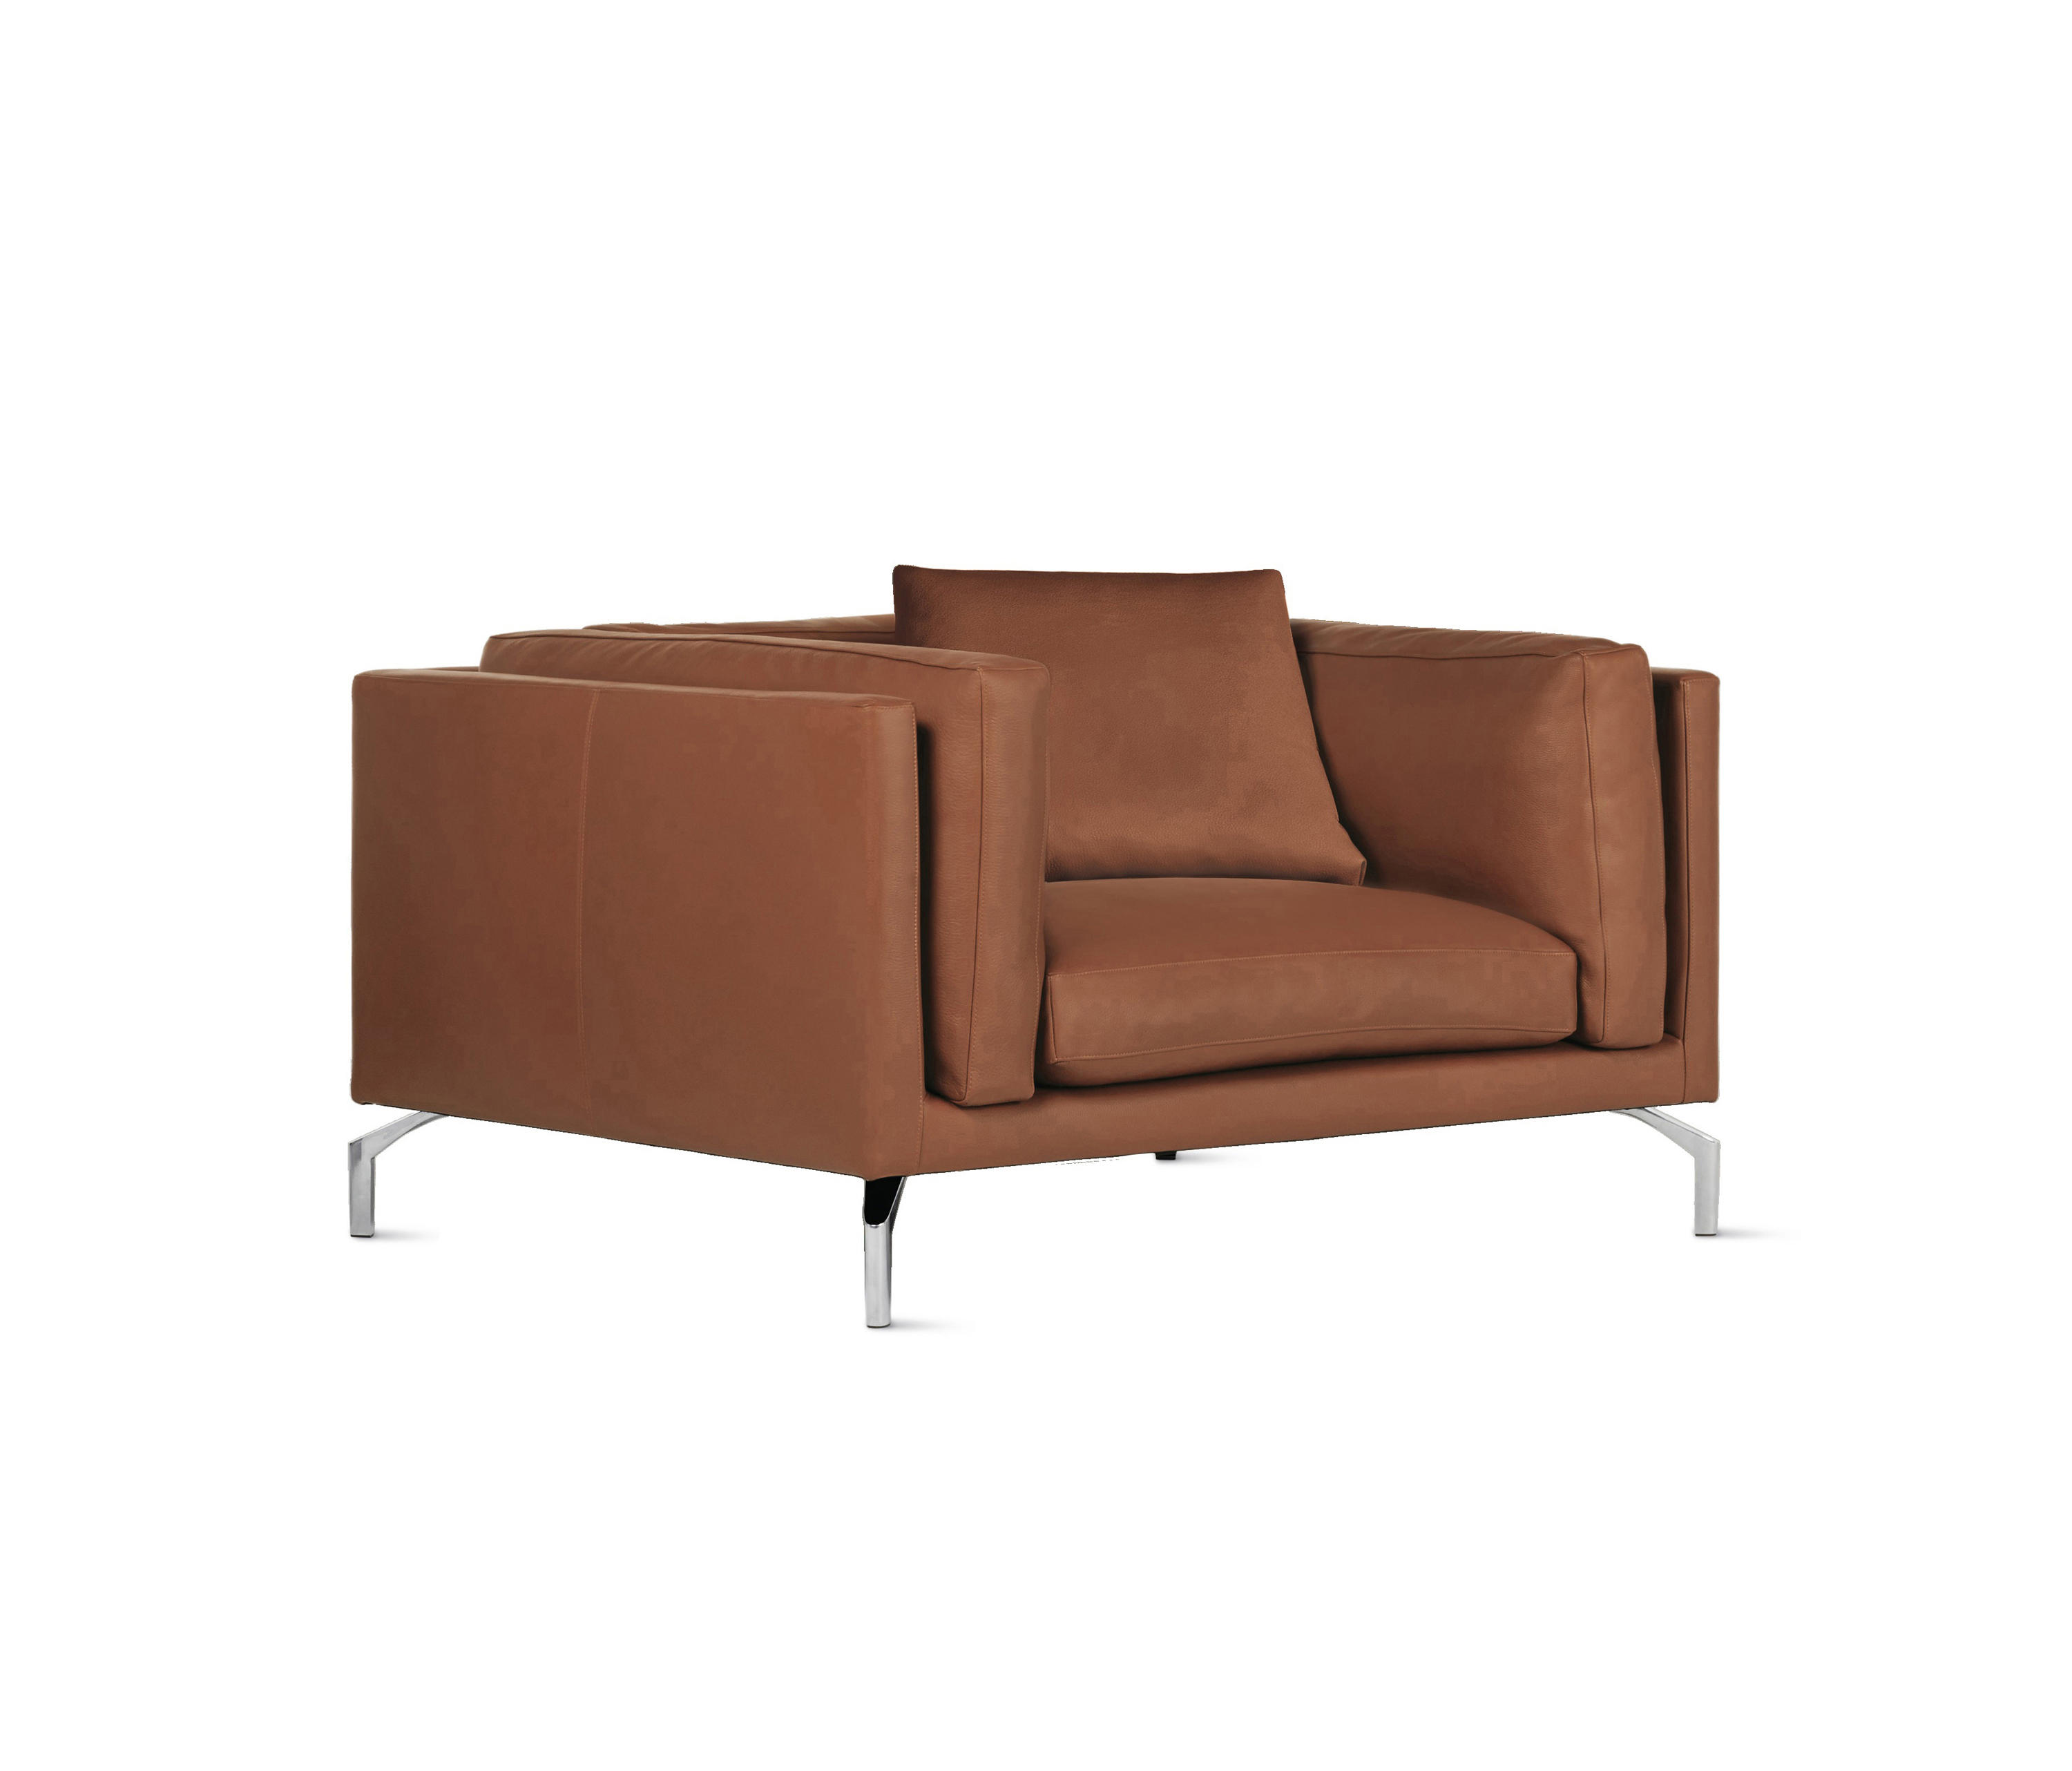 Chairs design within reach -  Como Armchair In Leather By Design Within Reach Armchairs